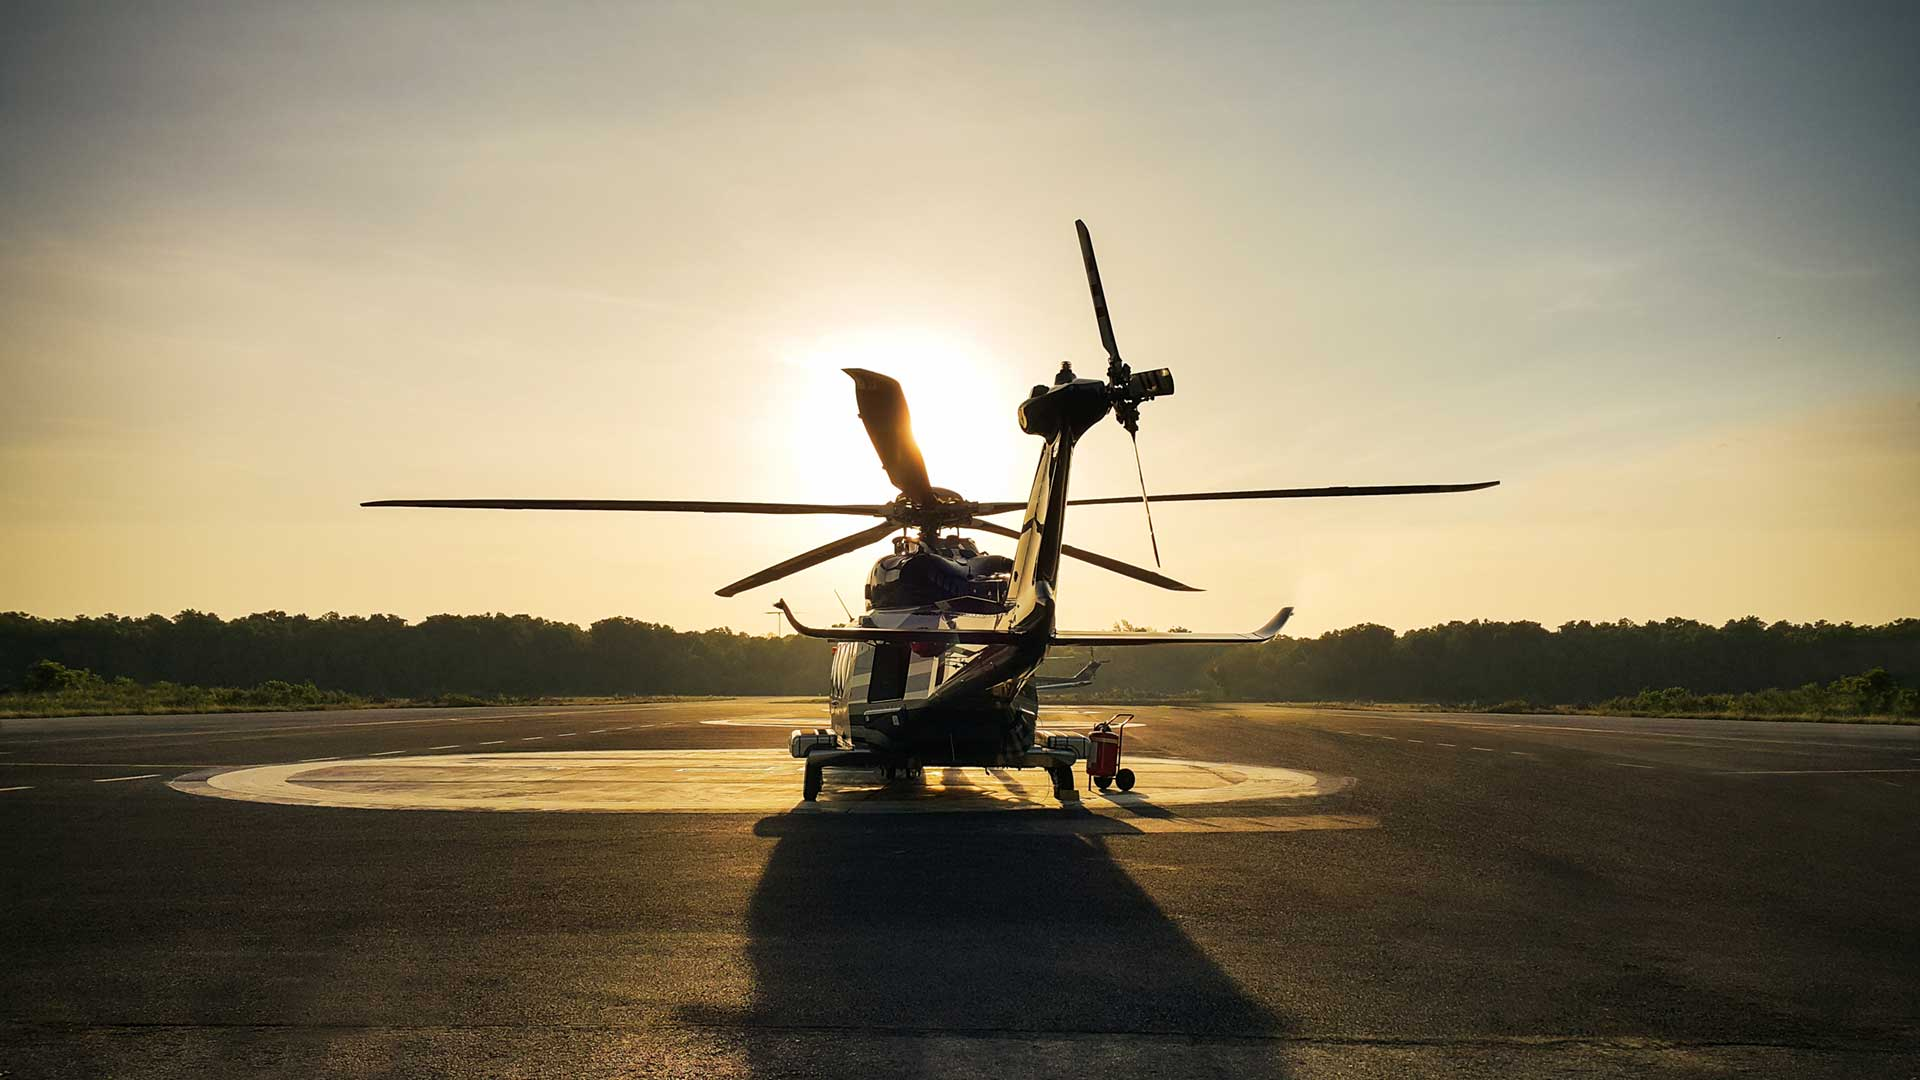 Helicopter transfer crews or passenger to work in offshore oil and gas industry